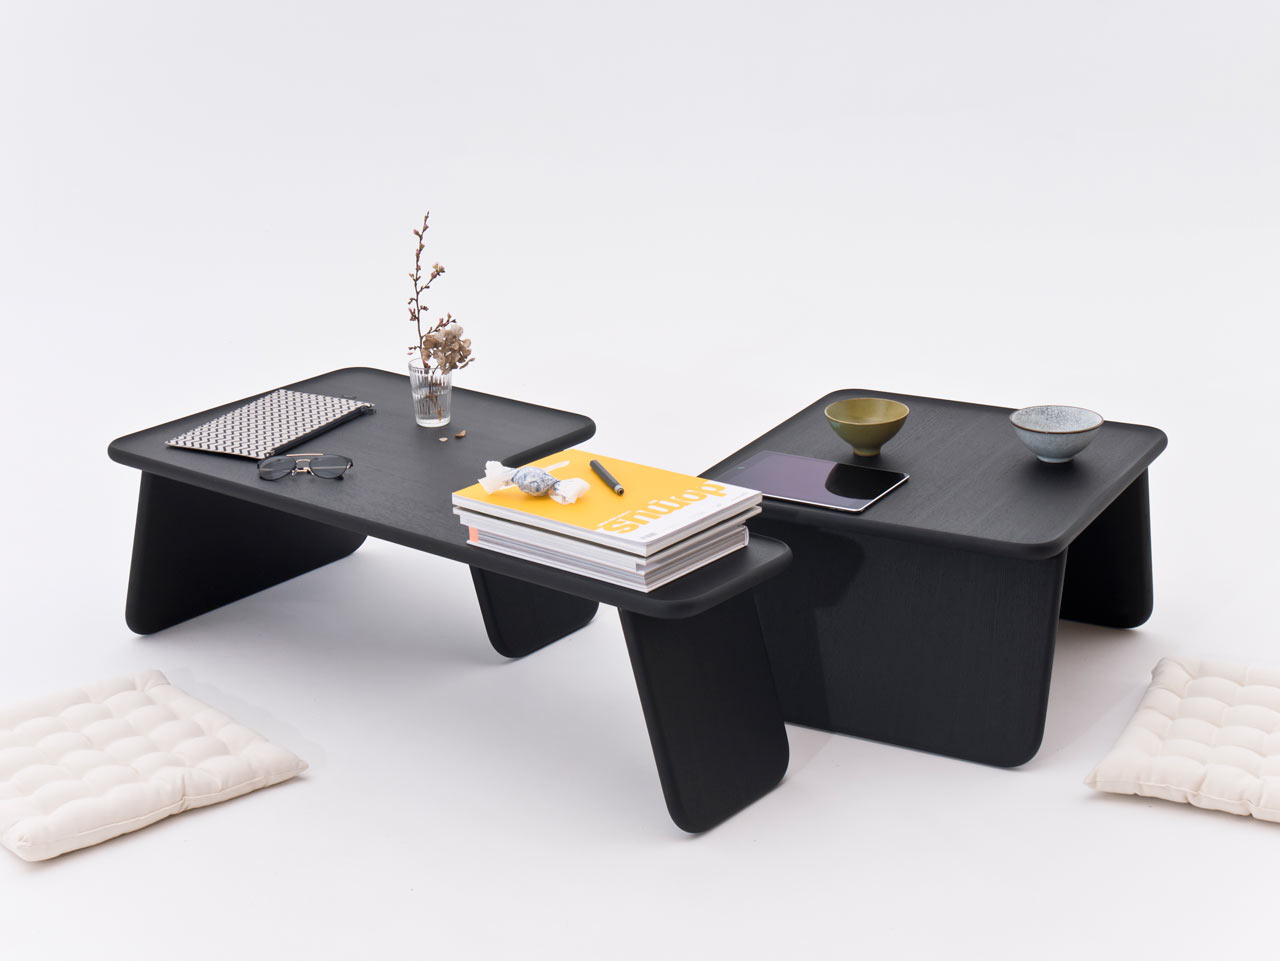 Bento Tray: Low, Stacking Tables Inspired by Asian Floor Culture